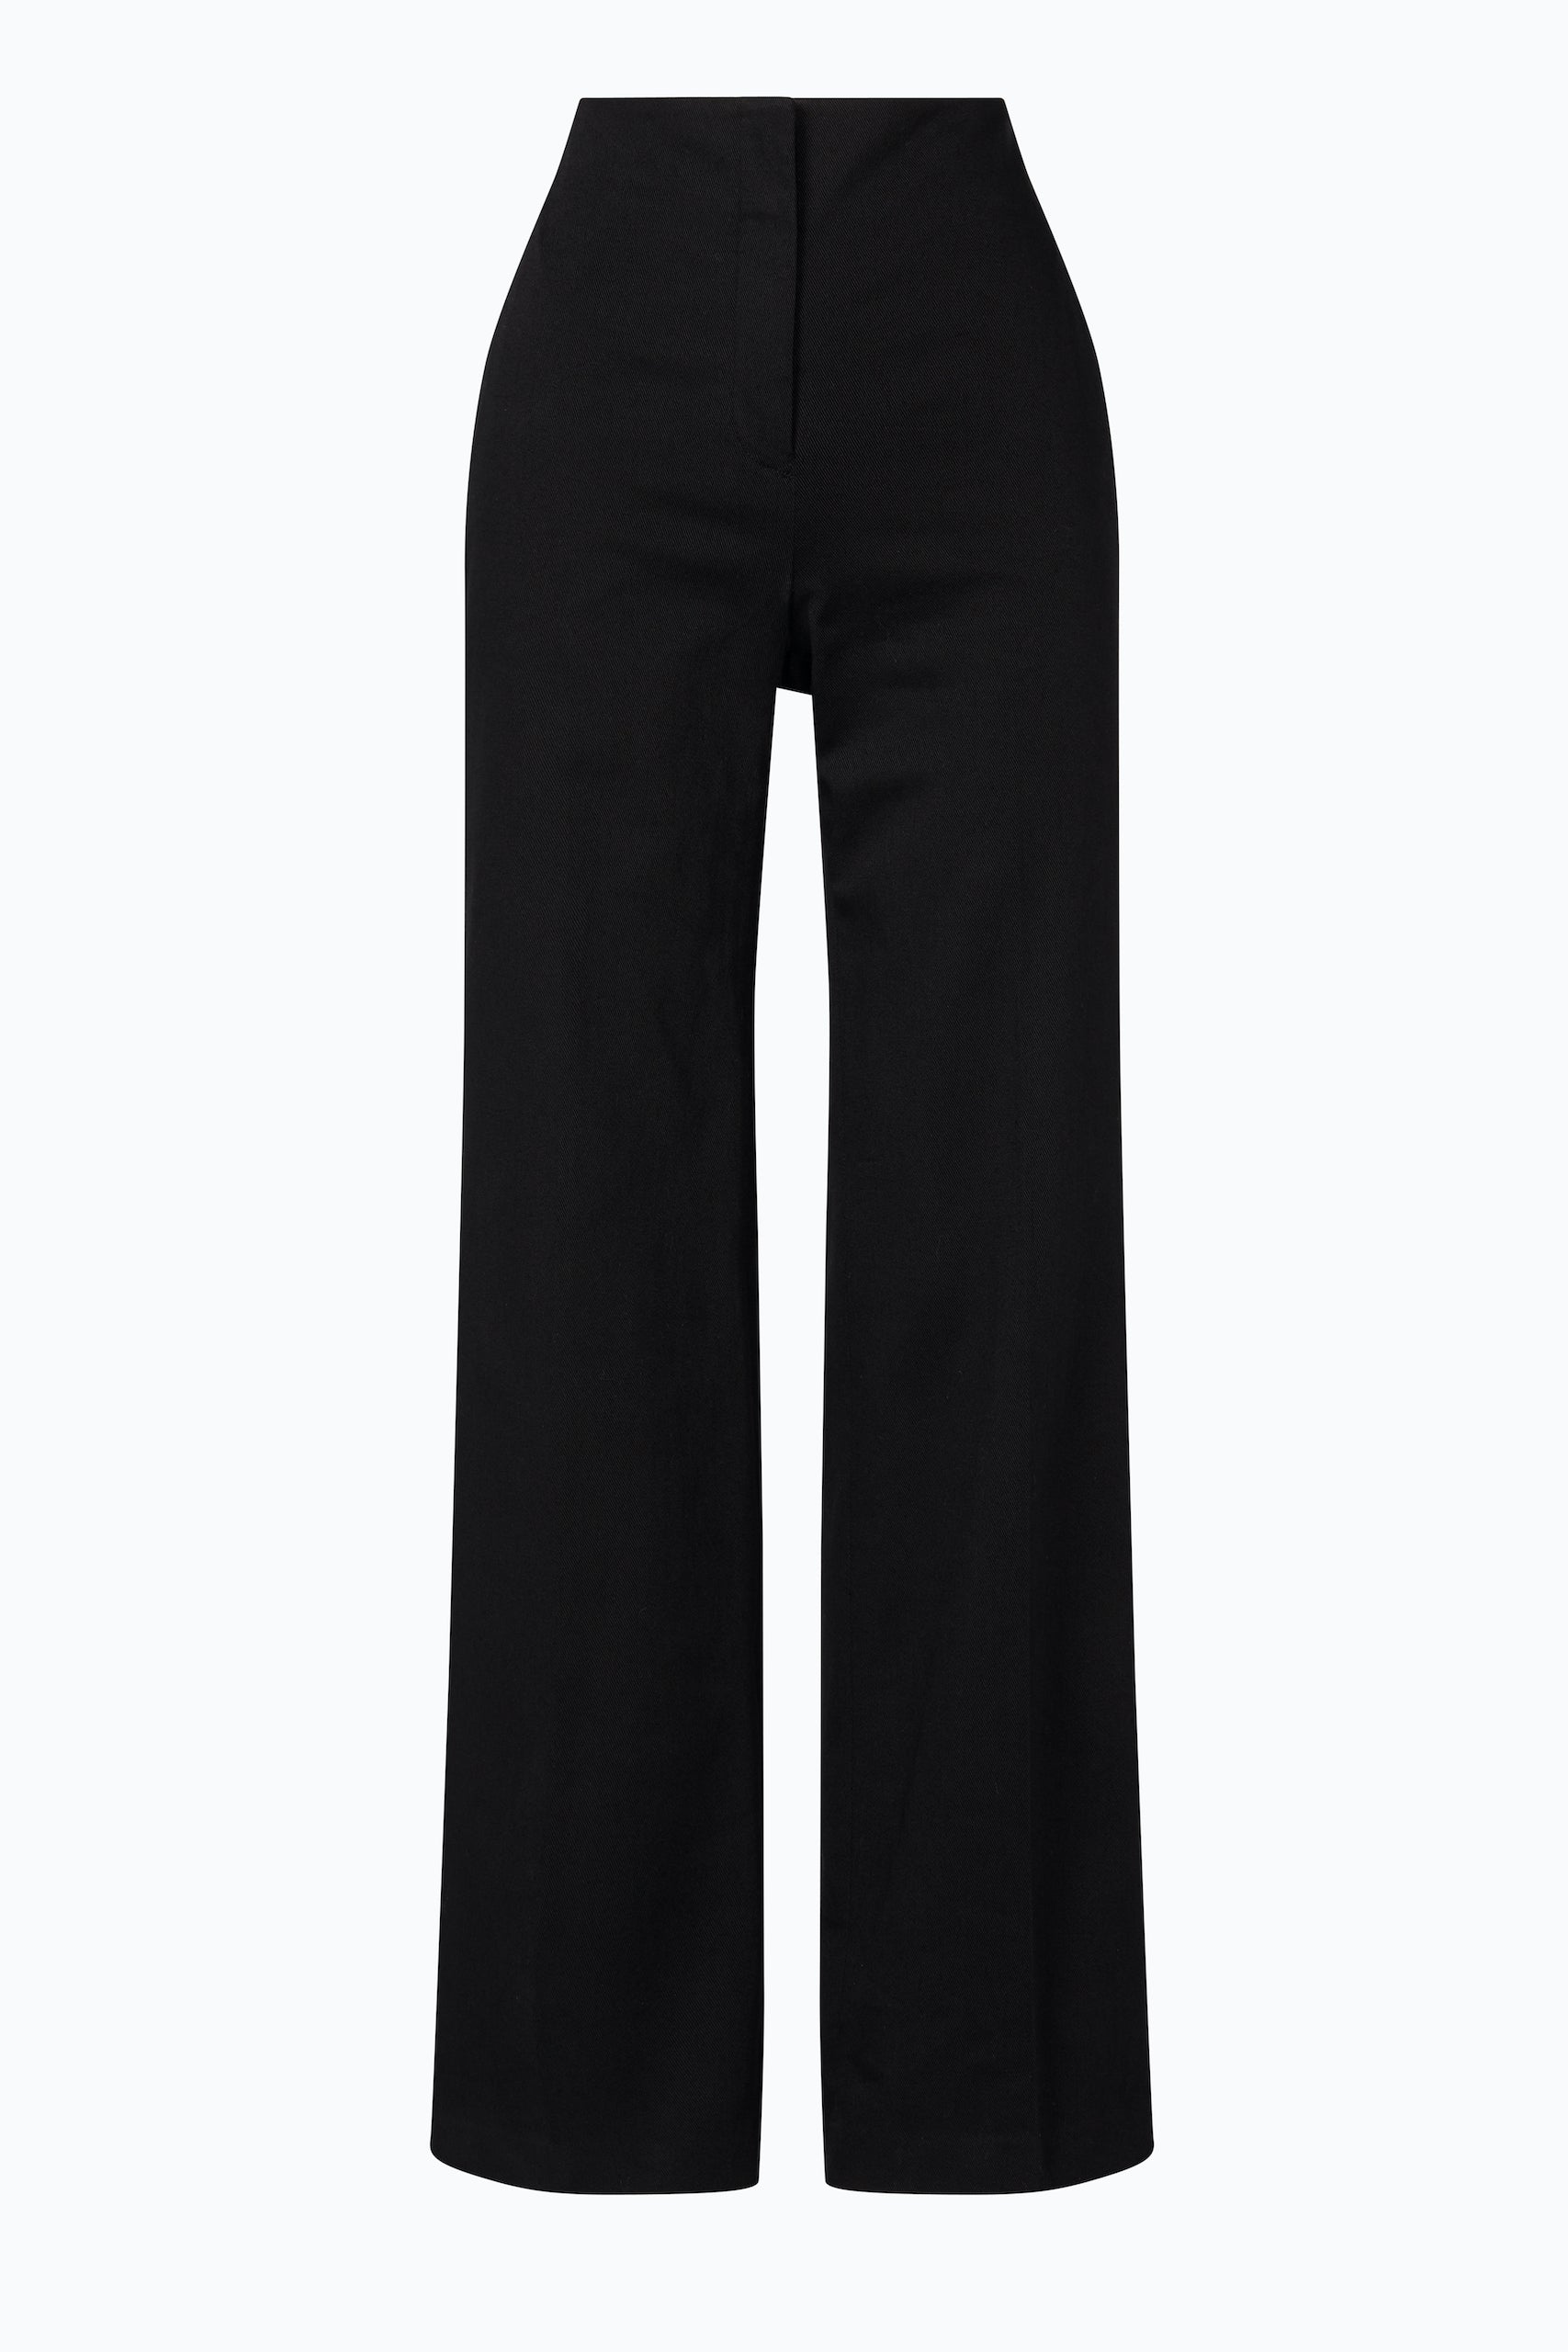 Black Augusta Trousers